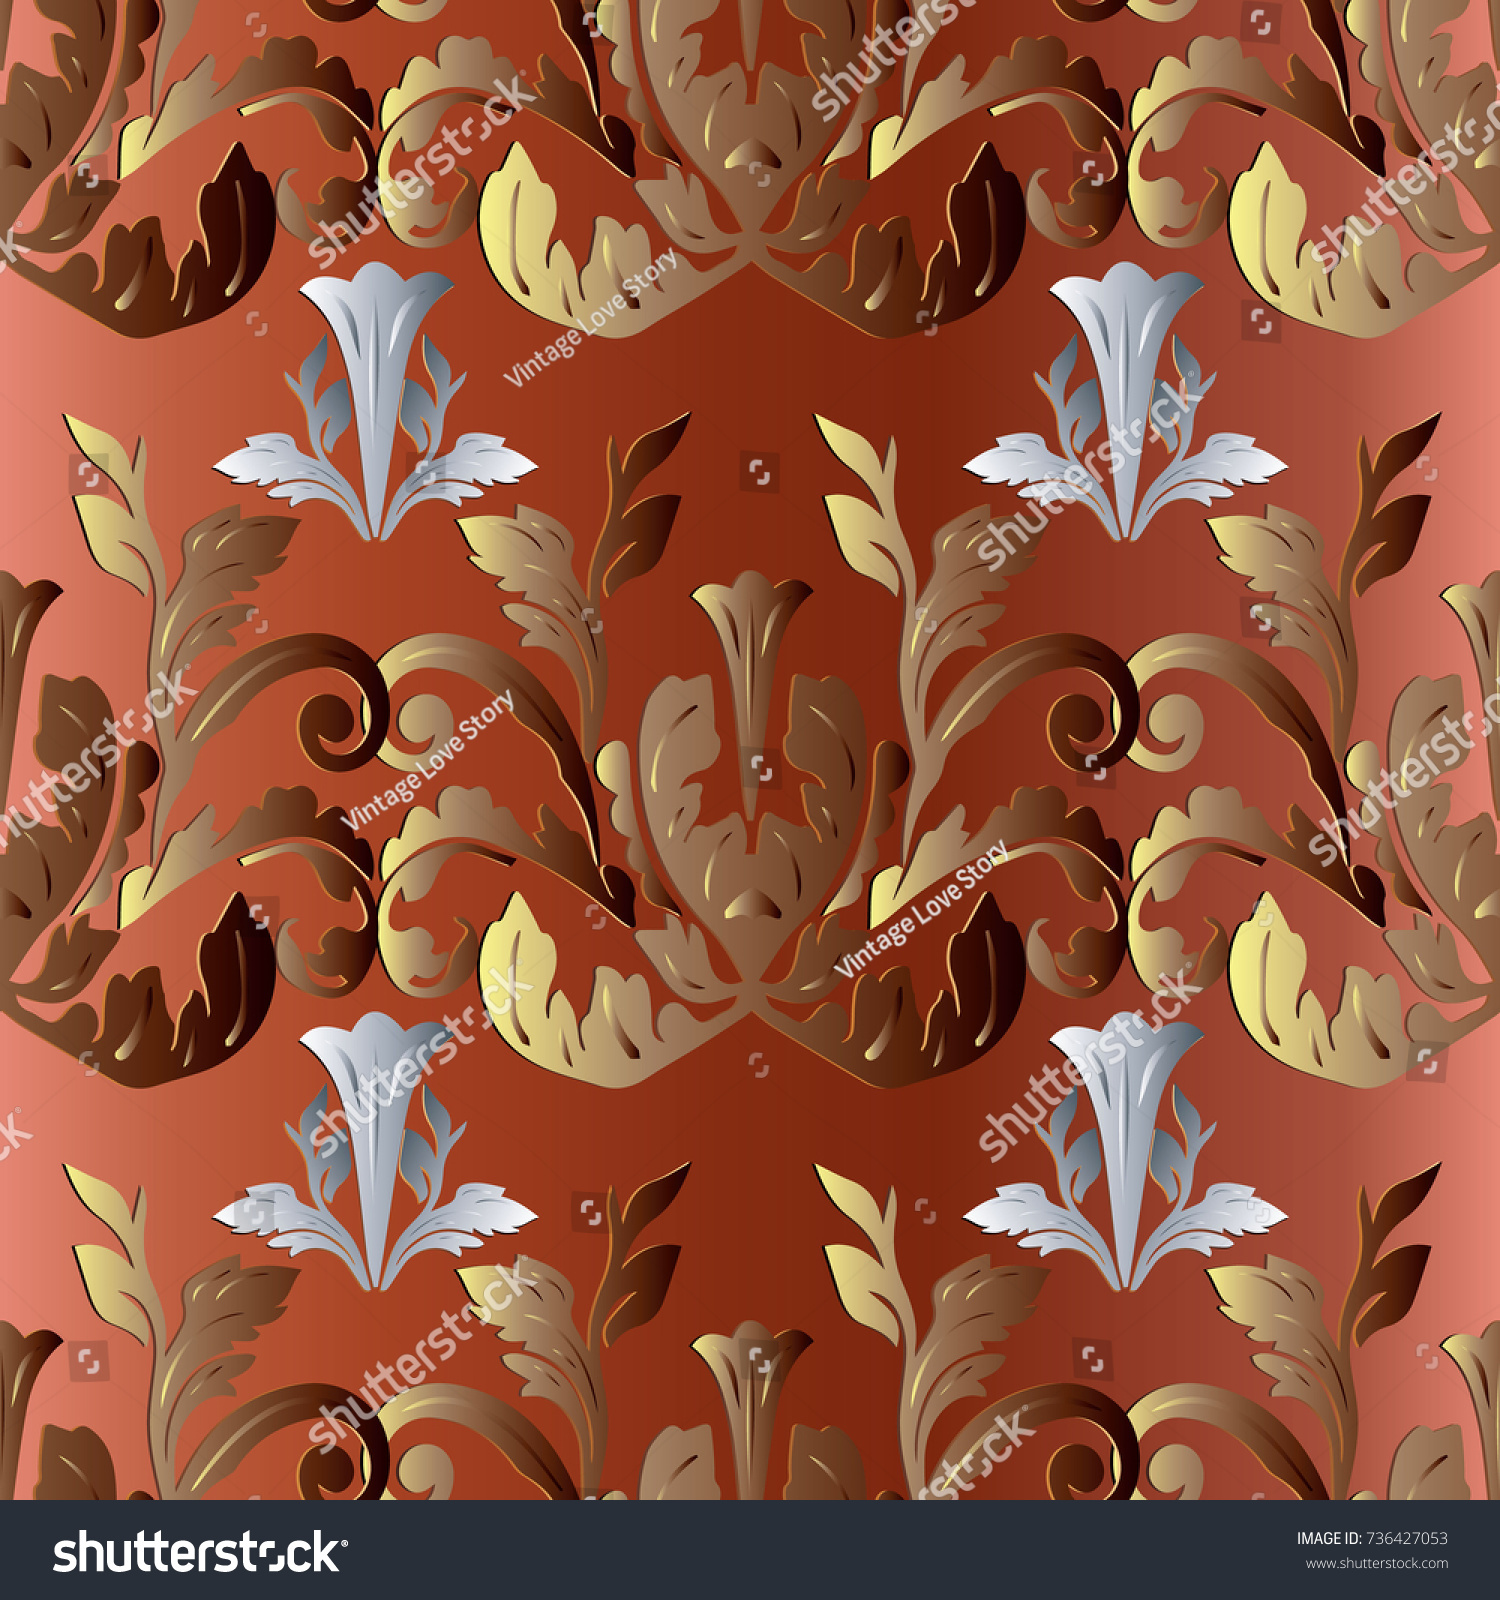 leaf scroll wallpaper vintage patterns - photo #43